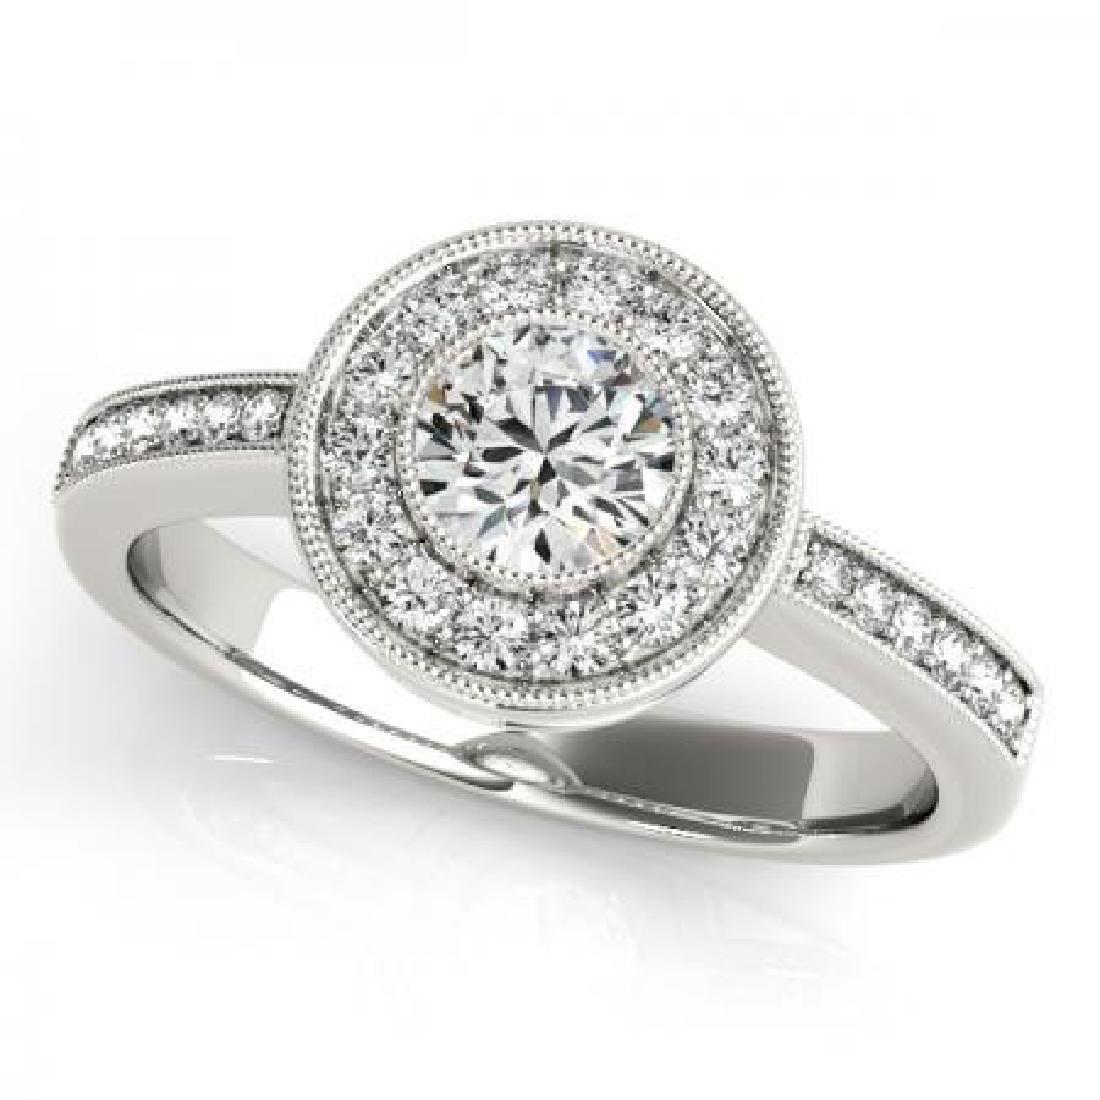 CERTIFIED PLATINUM 2.50 CT G-H/VS-SI1 DIAMOND HALO ENGA